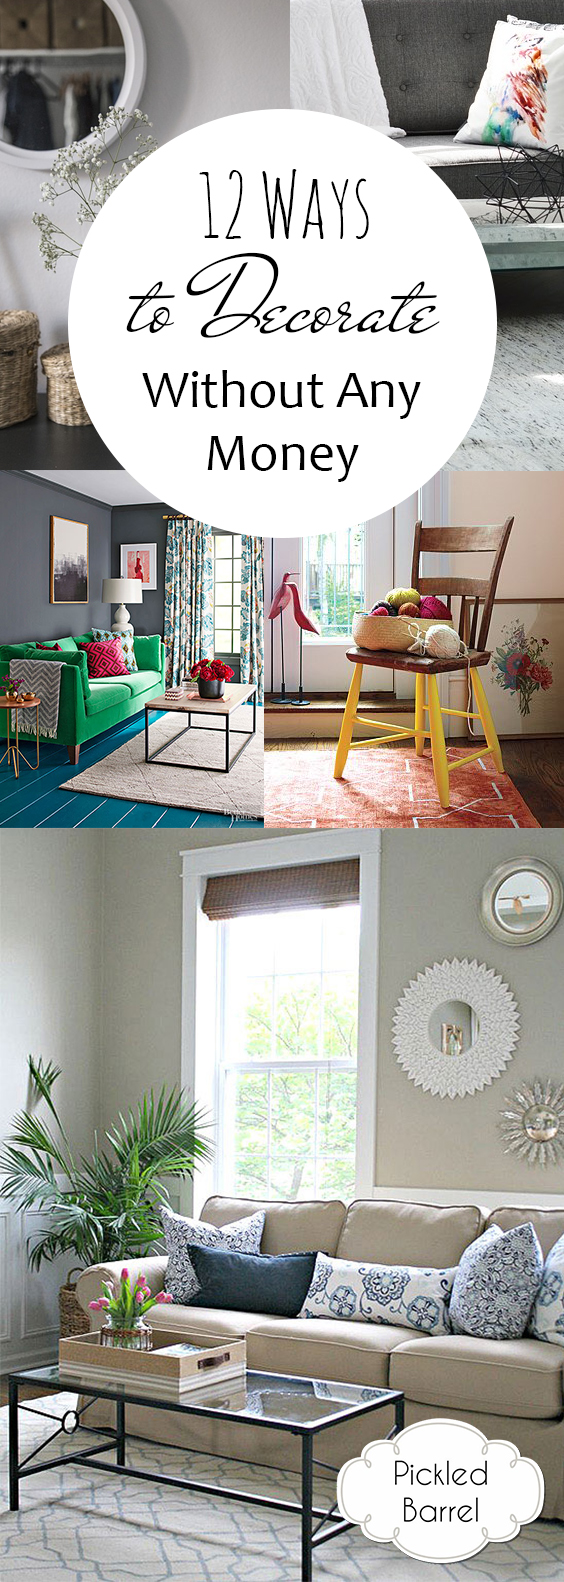 https://pickledbarrel.com/2017/06/22/12-ways-to-decorate-without-any-money/